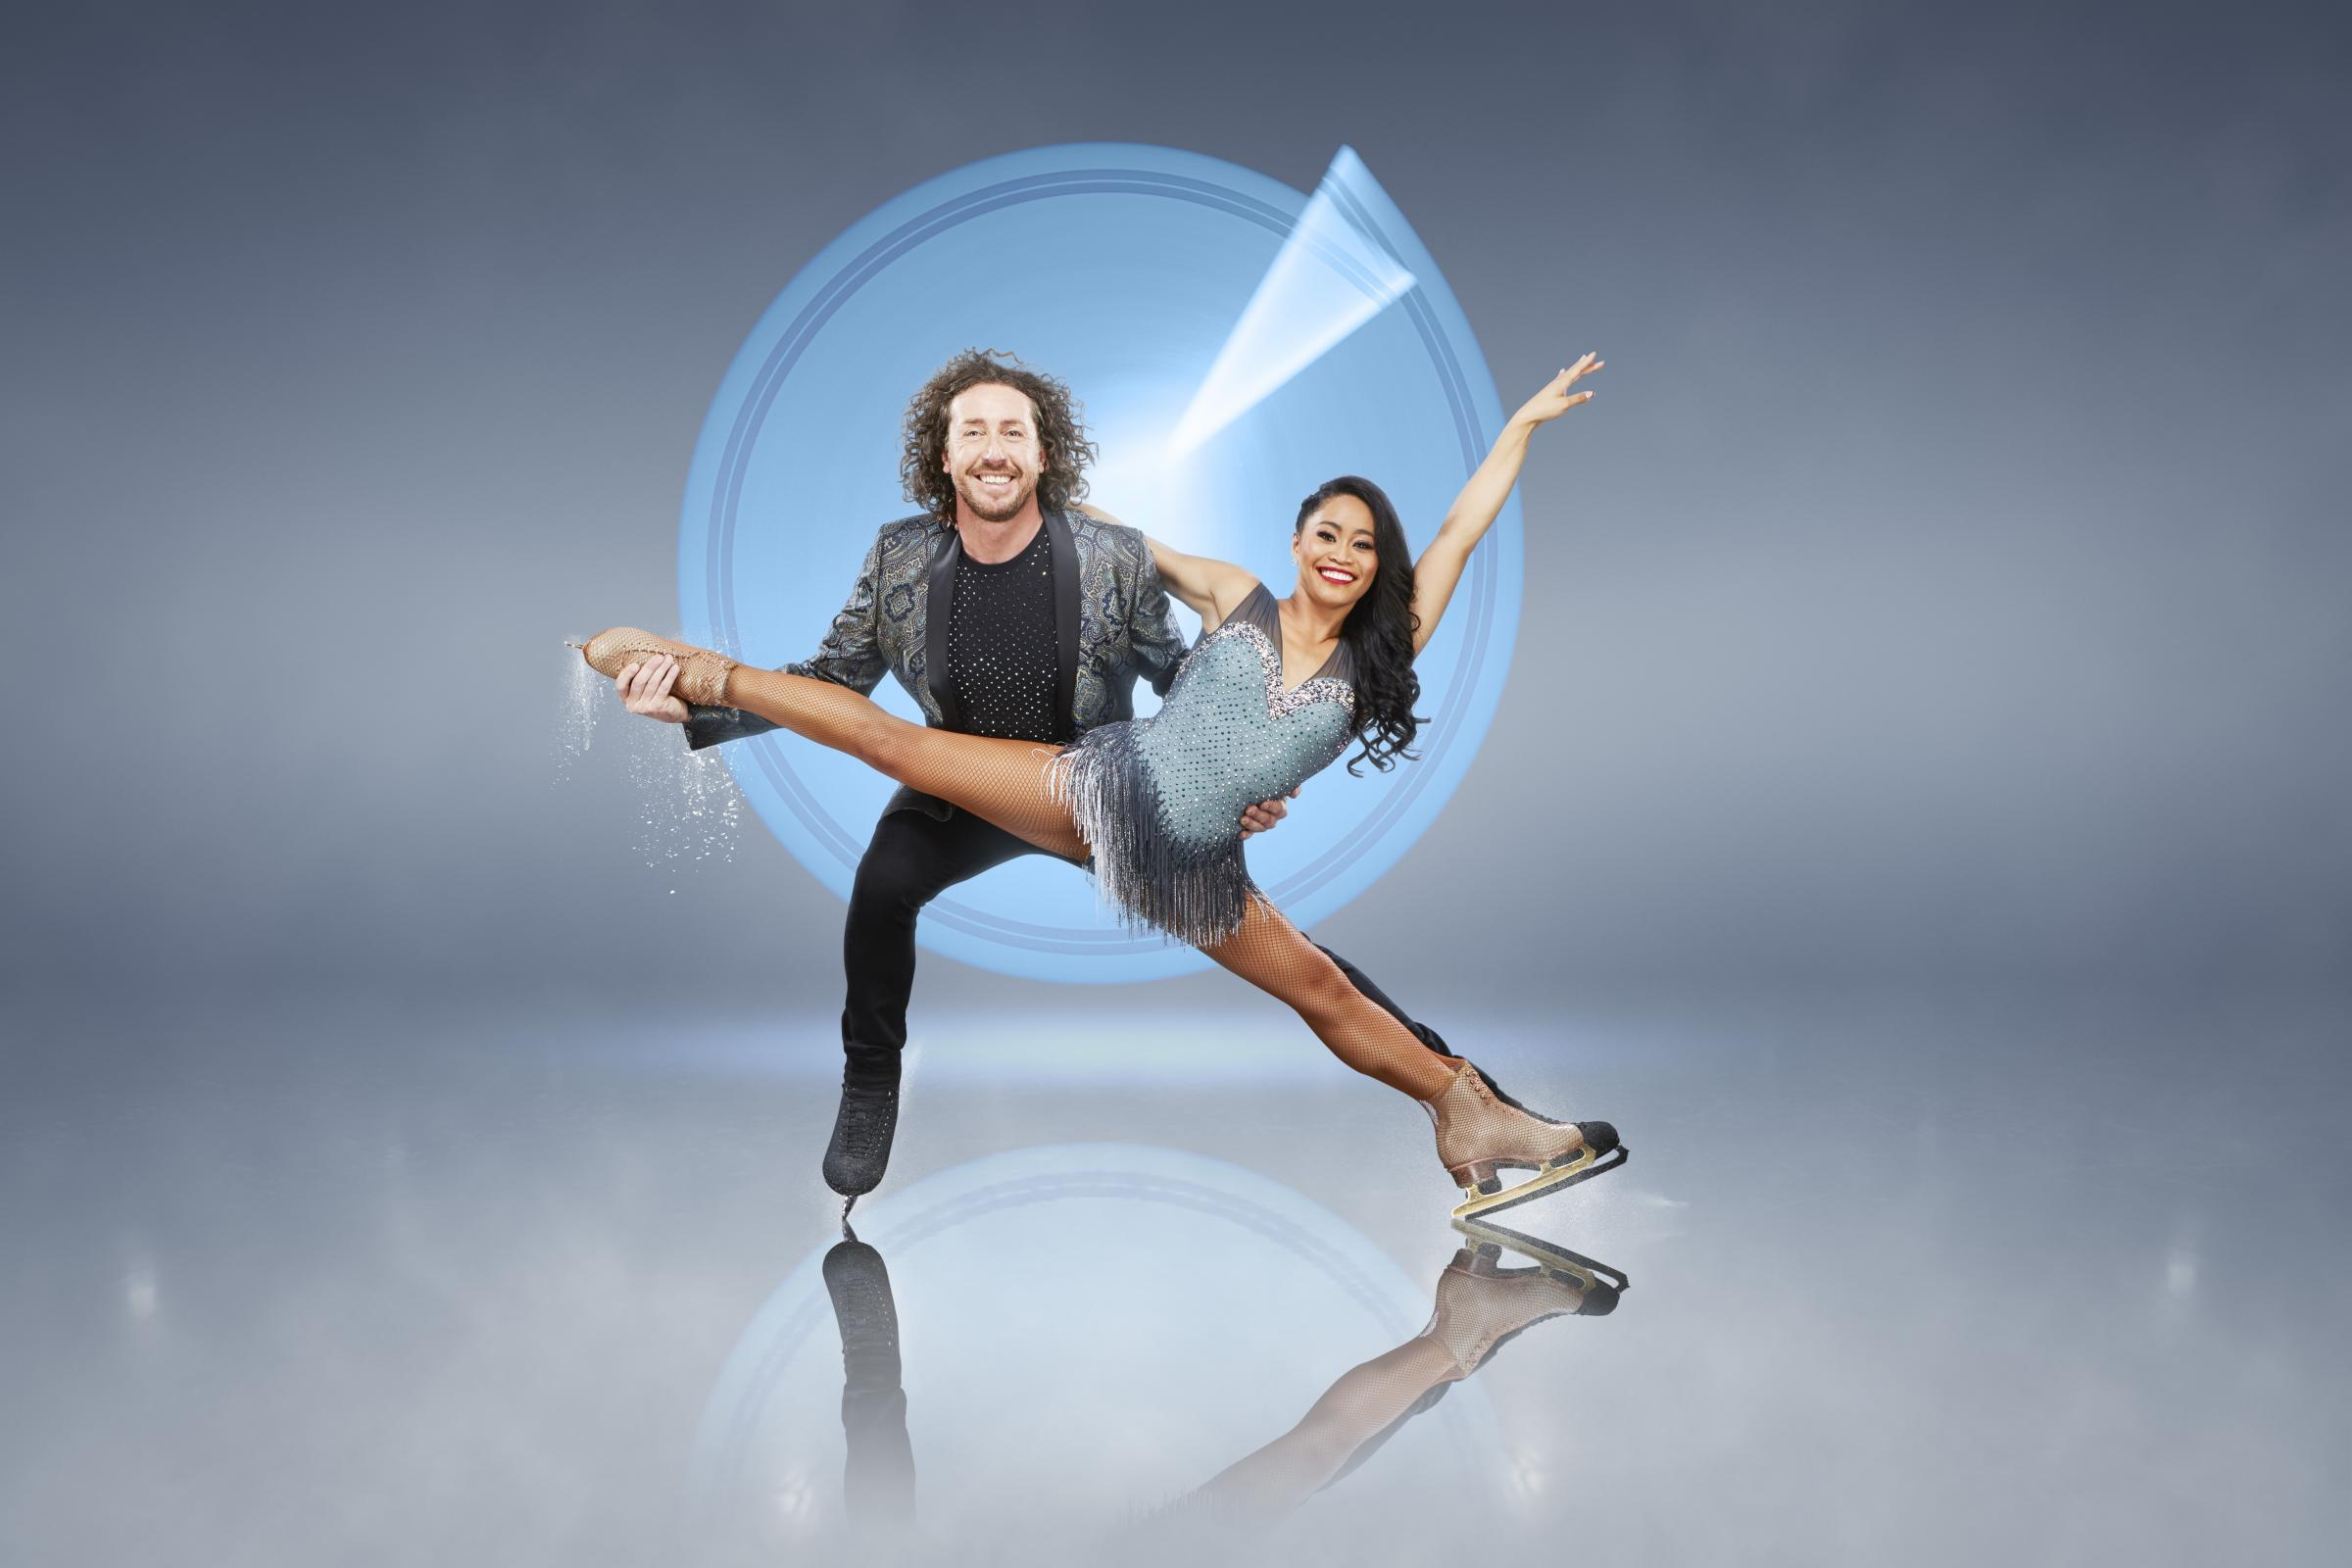 'Dancing on Ice' contestant, Ryan Sidebottom with his skating partner Brandee Malto. Photo: ITV Studios